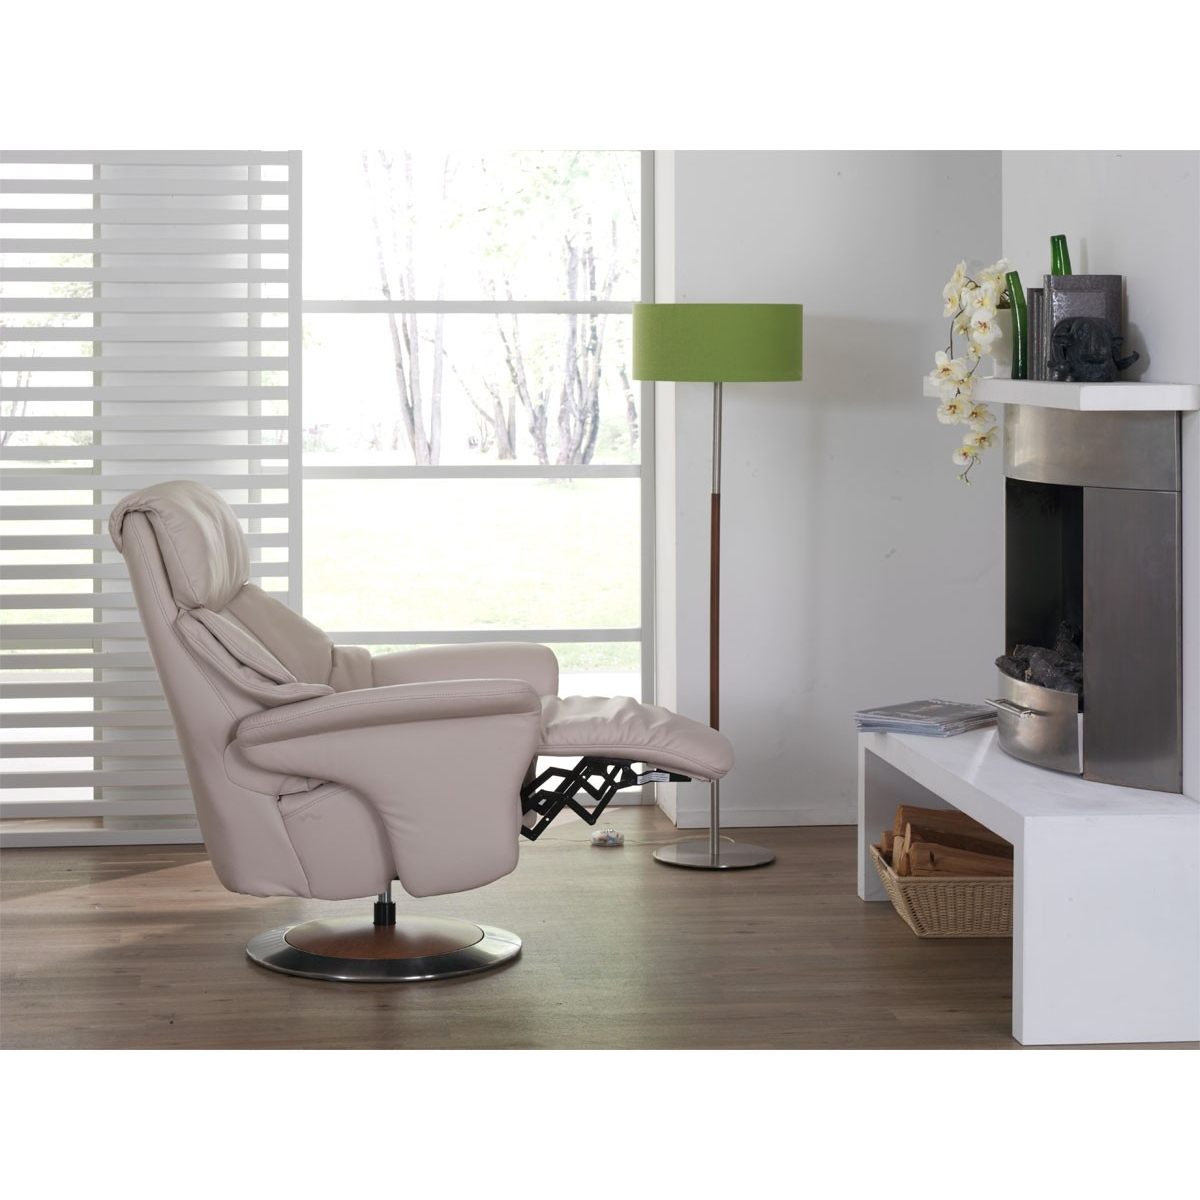 k b l nestol himolla easy swing 7322 med indbygget skammel prismatch. Black Bedroom Furniture Sets. Home Design Ideas